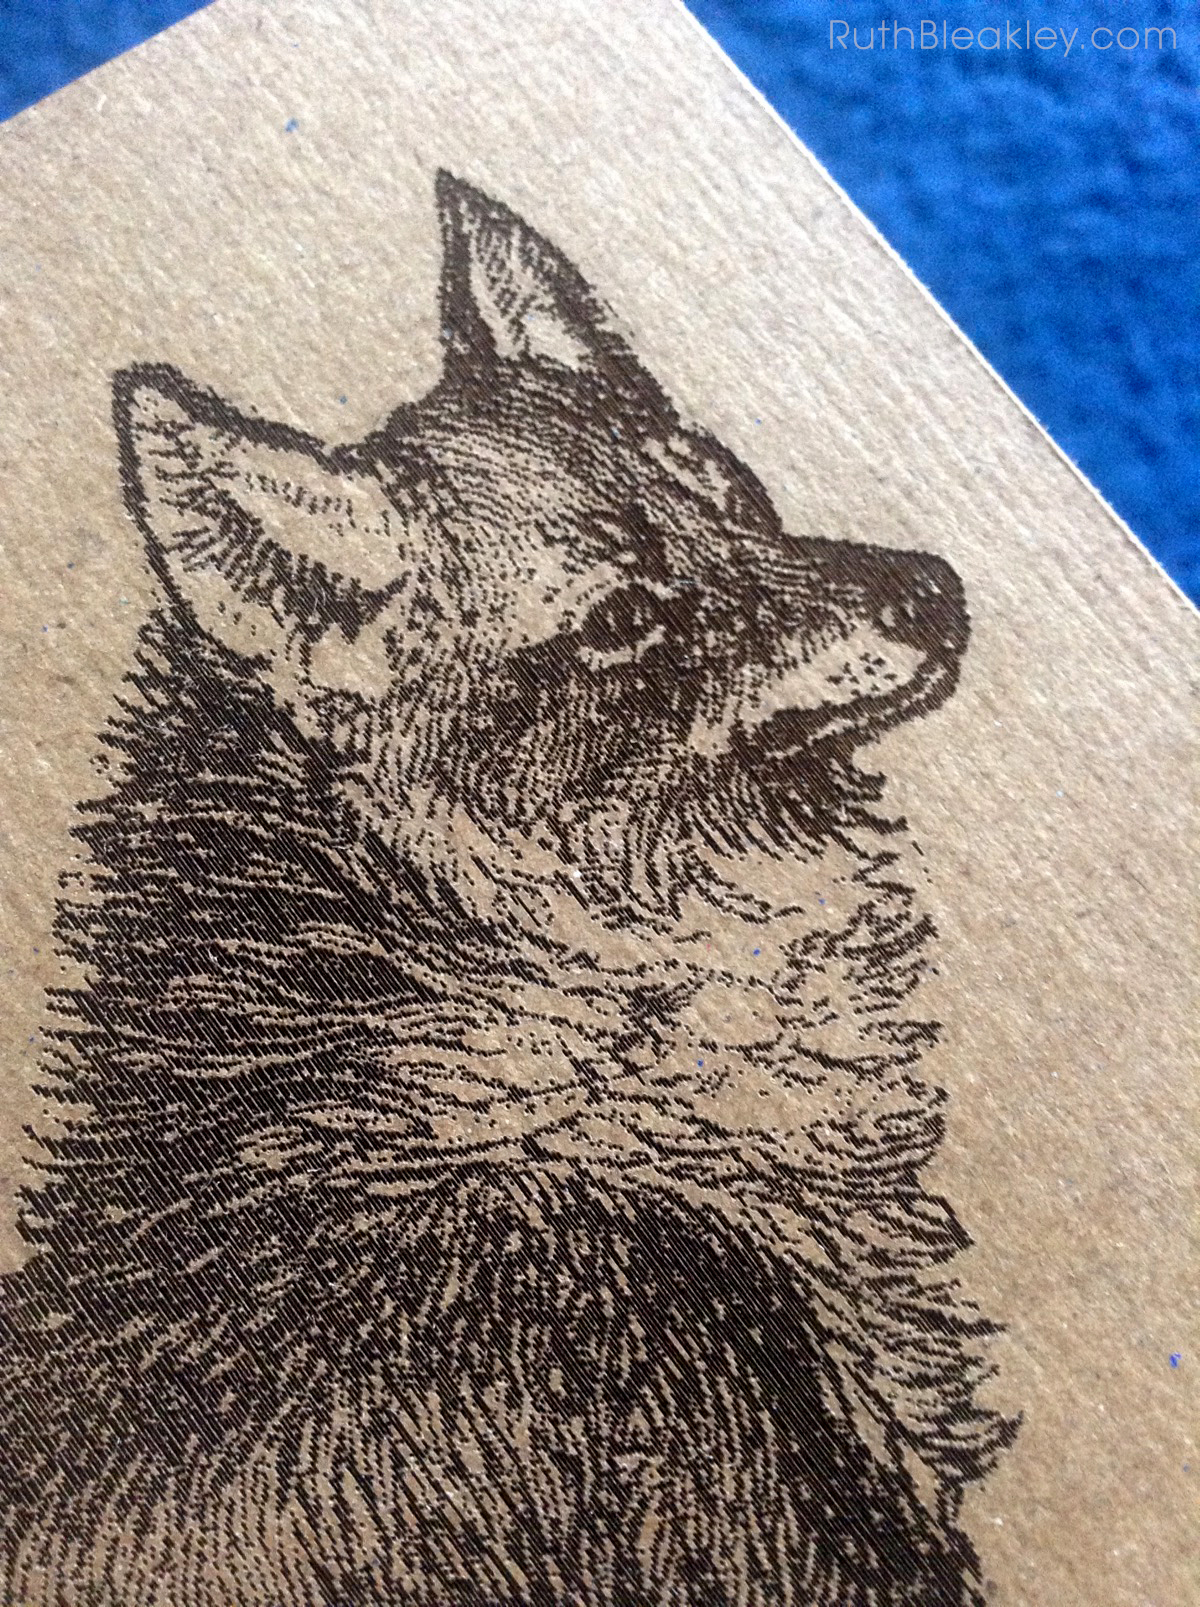 Coyote Journal handmade by Ruth Bleakley - 3